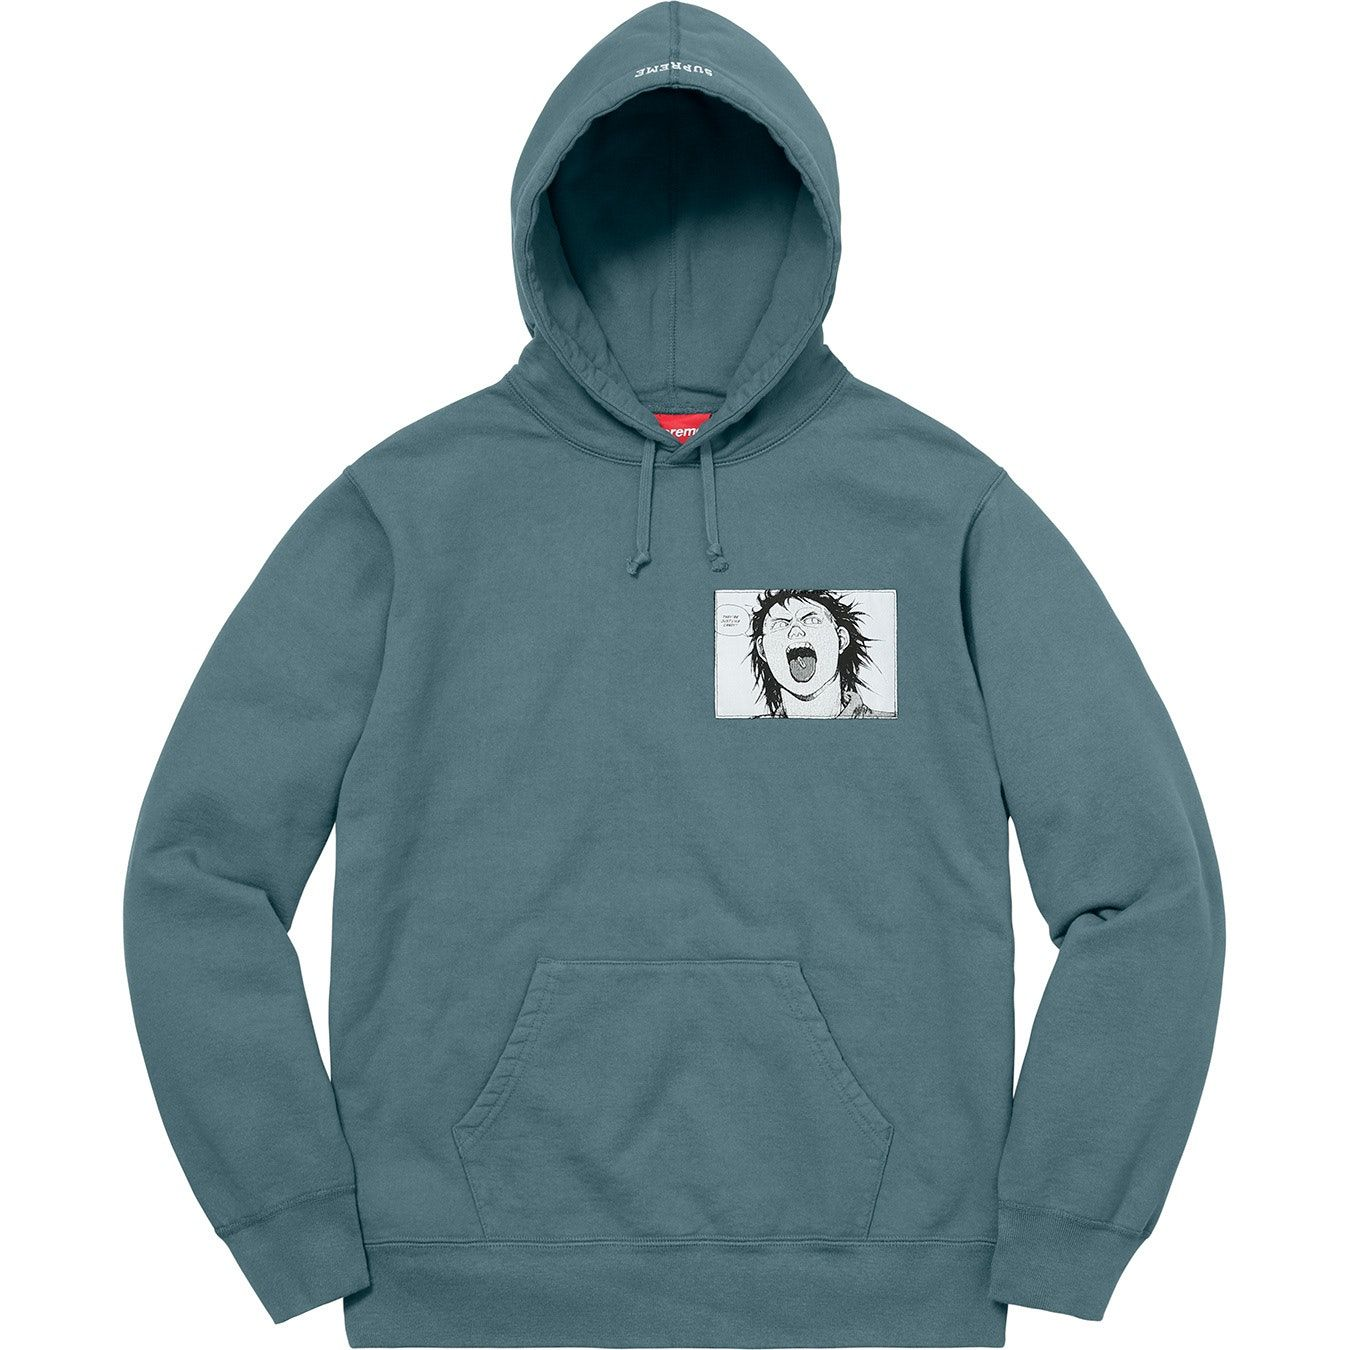 dc766c6b Check out the Supreme AKIRA Patches Hooded Sweatshirt Slate available on  StockX